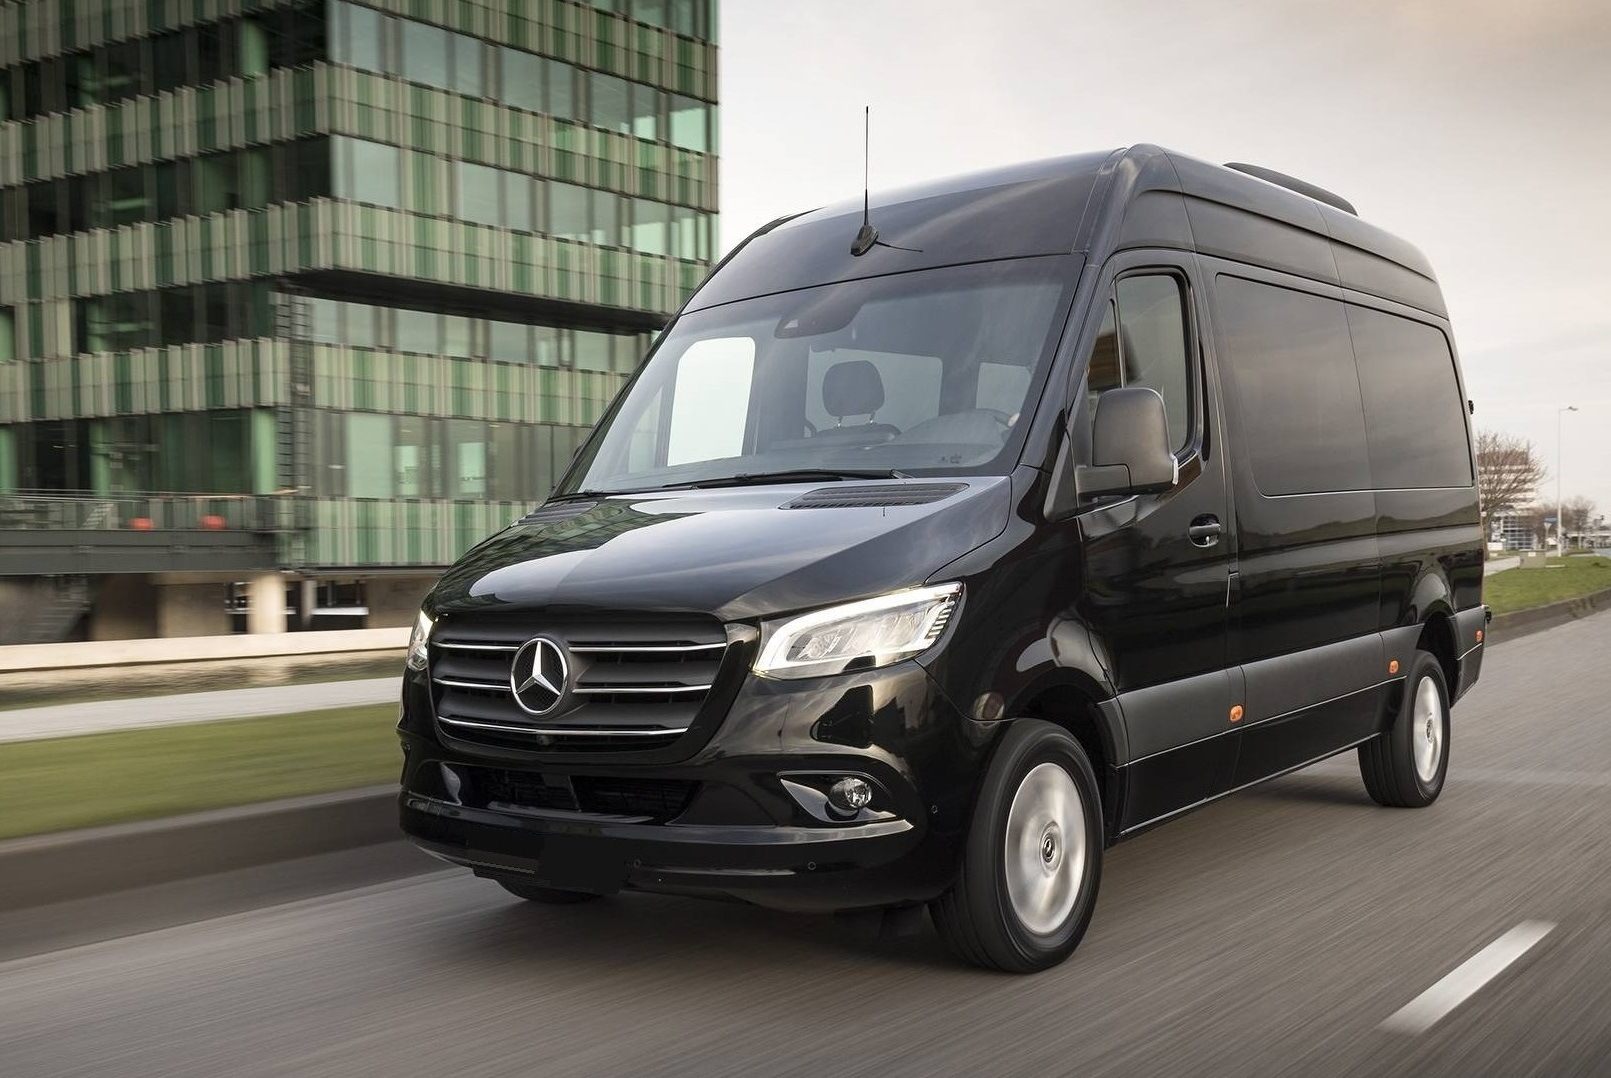 Аренда минивена Mercedes-Benz Sprinter (black) VIP 2019 в Минске